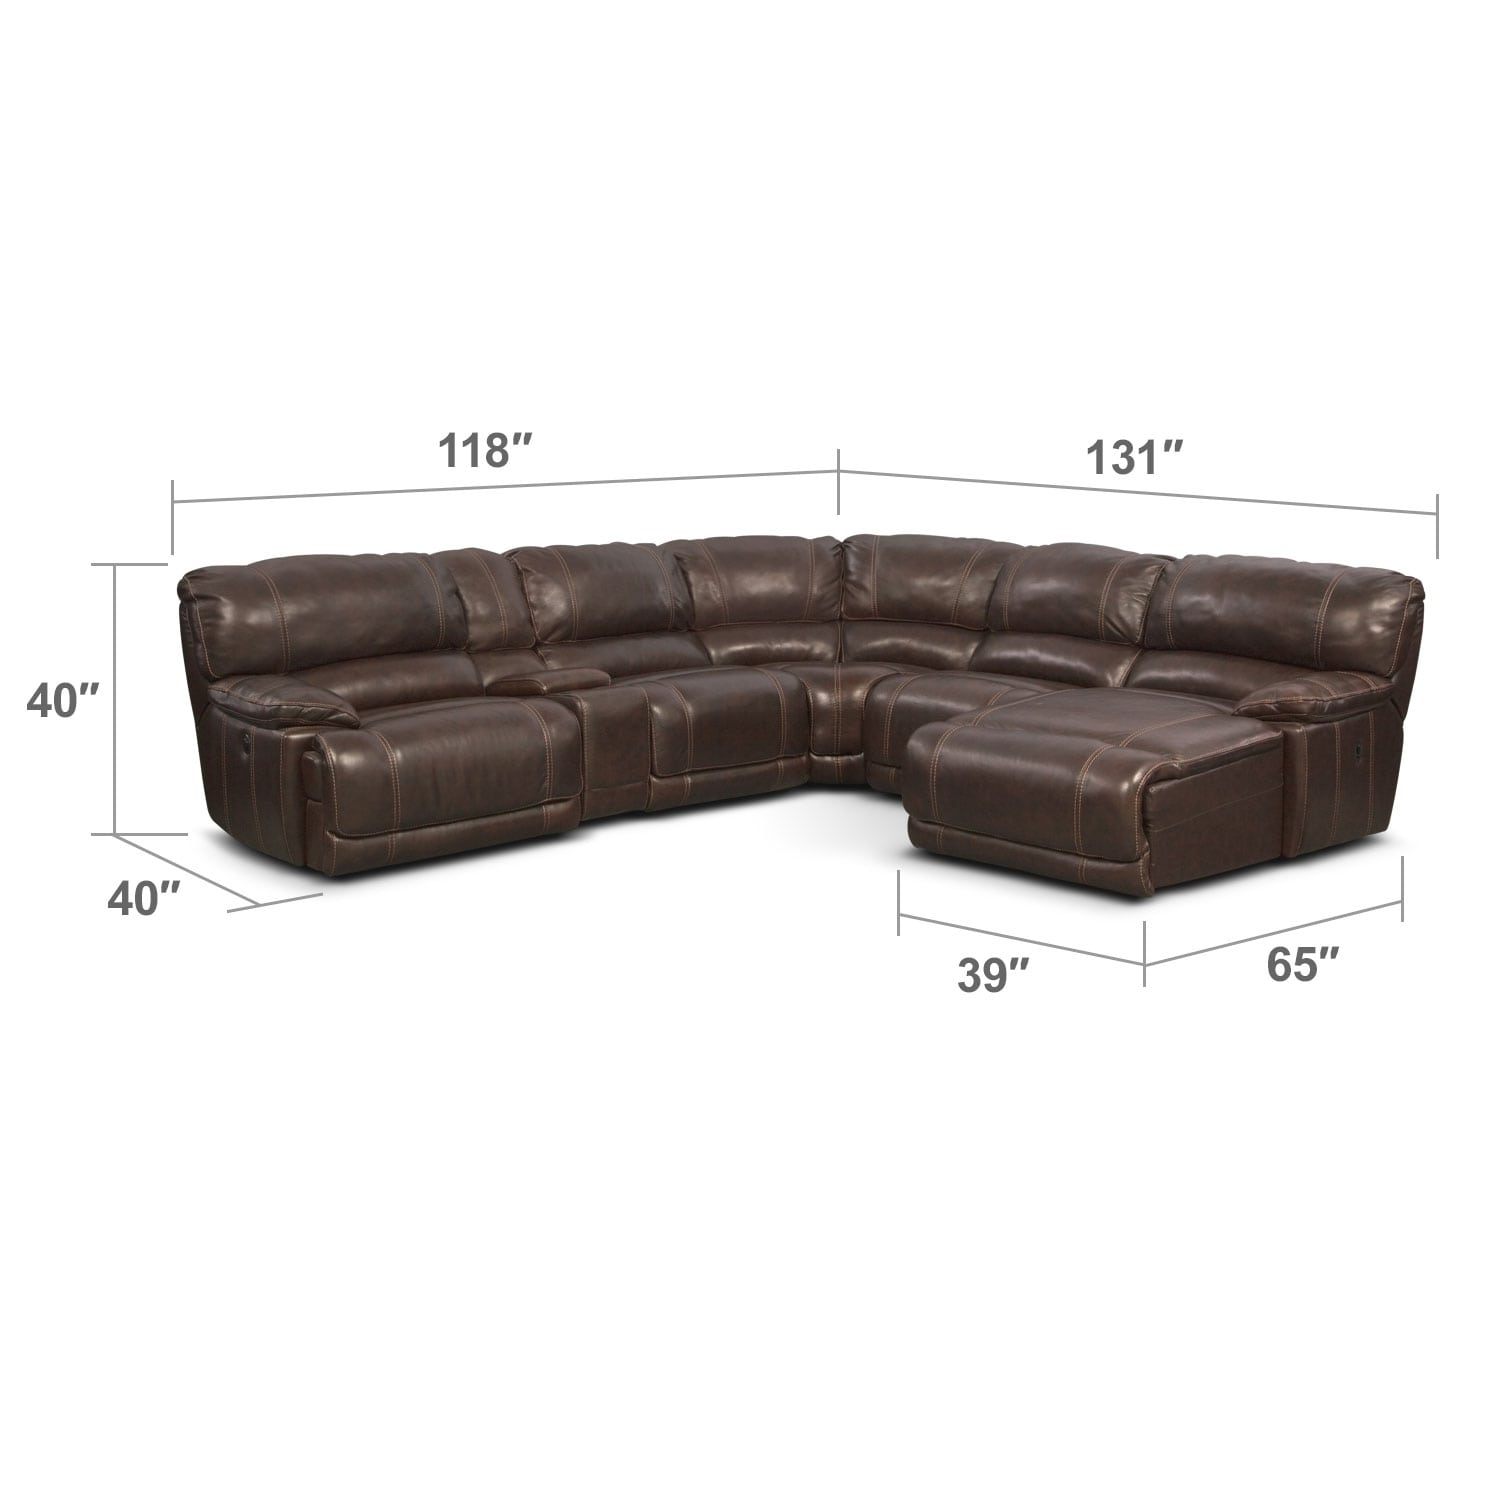 Living Room Furniture - St. Malo 6 Pc. Power Reclining Sectional